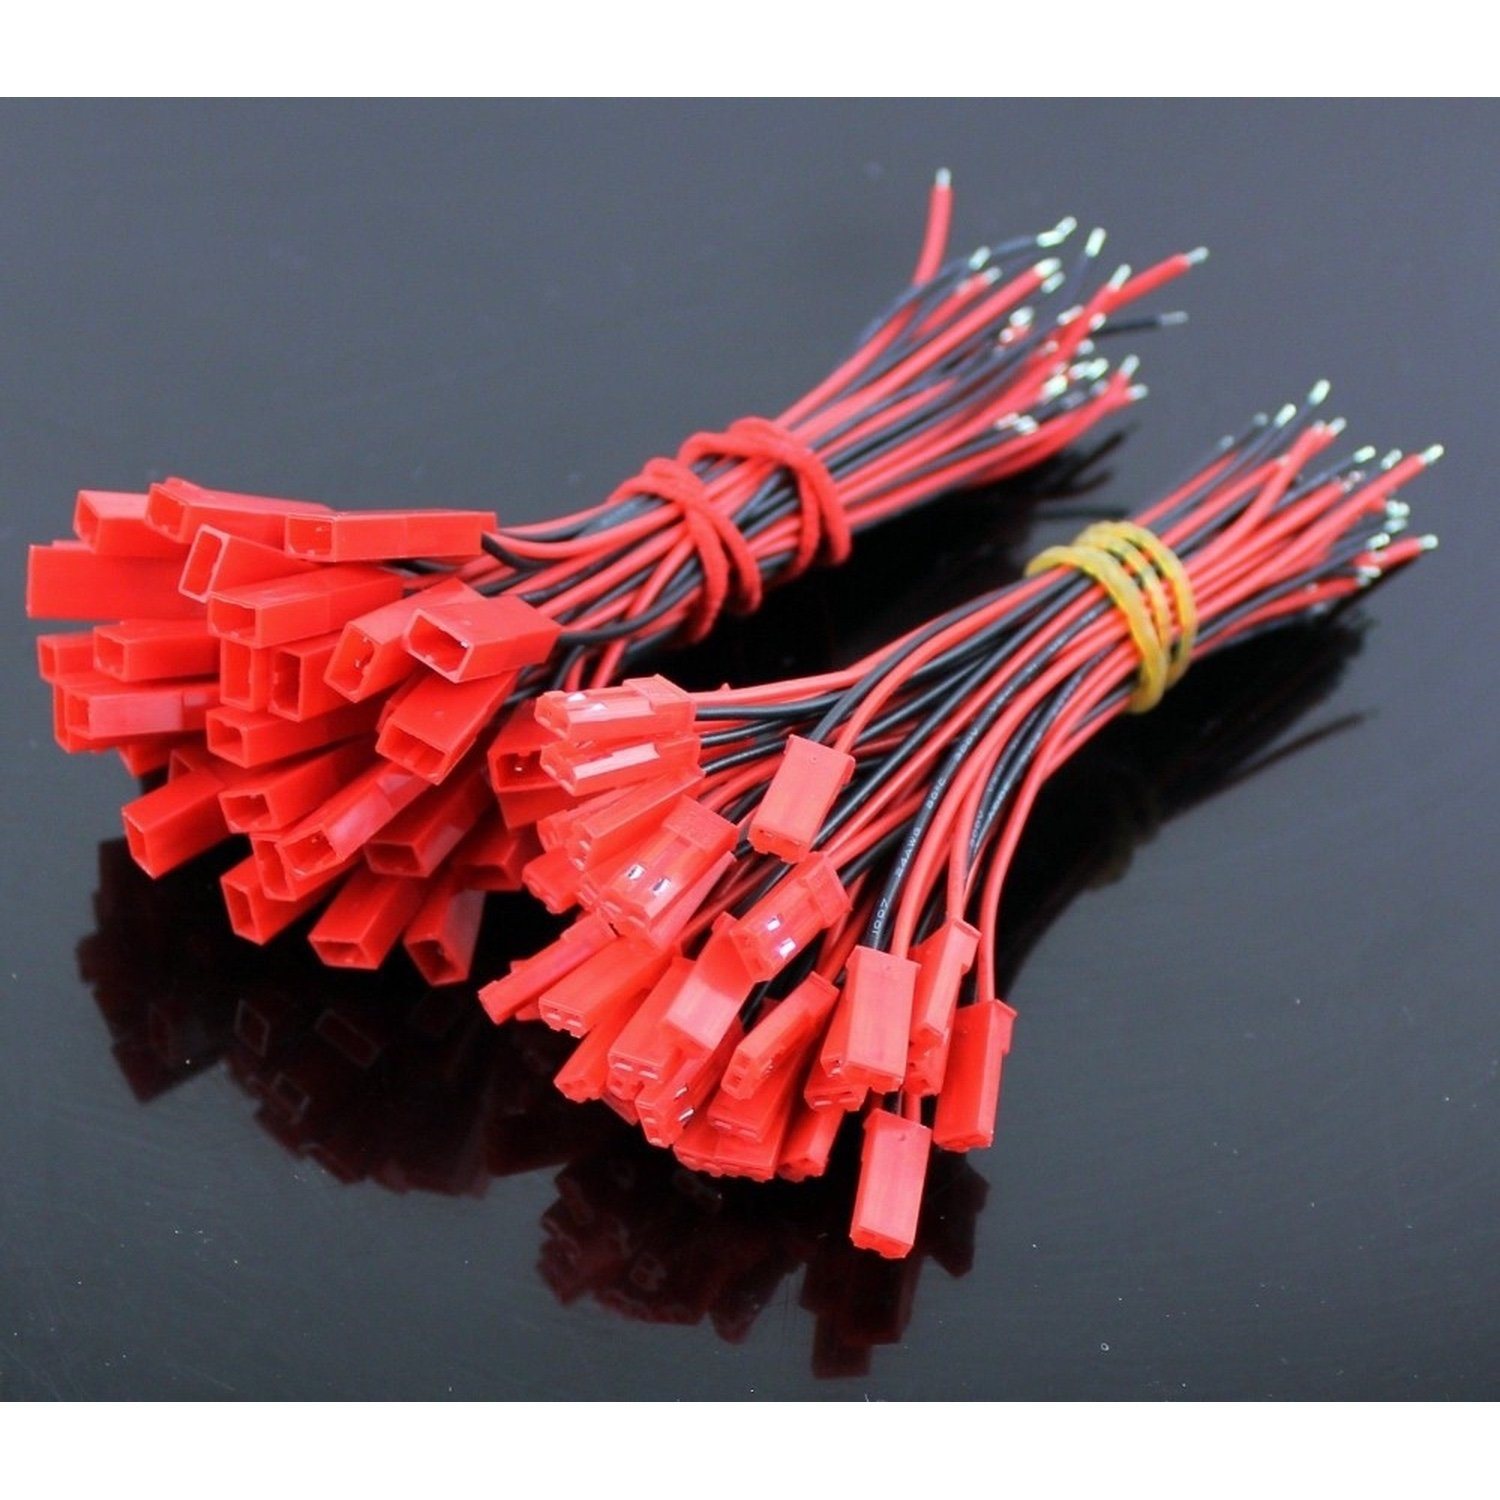 PACK 20 CONNECTORS JST WITH CORD (10 MALE + 10 FEMALE) micro parallel charging board w micro jst jst ph connectors for r c helicopter black red